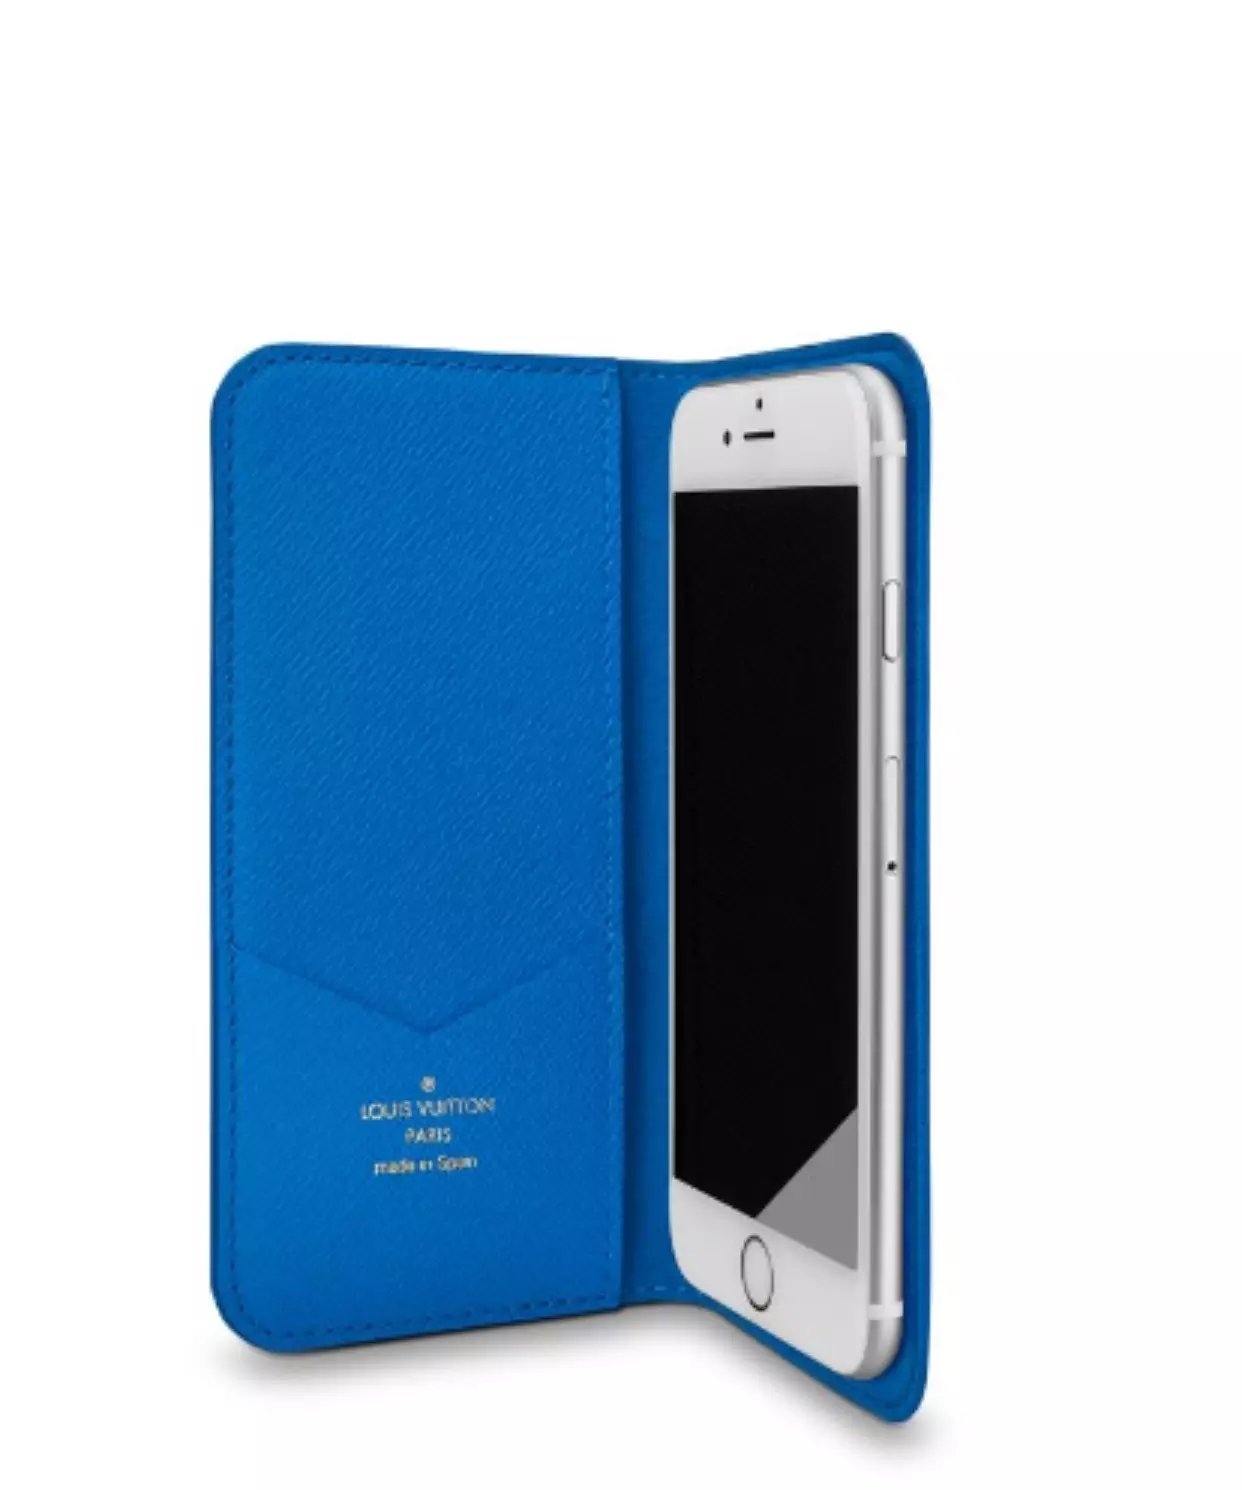 die besten iphone hüllen iphone hülle selbst designen Louis Vuitton iphone6s plus hülle iphone 6s Plus original hülle zubehör für iphone 6s Plus 6slber handyhüllen designen iphone 6s Plus beste hülle handyhülle i phone 6s iphone 6s Plus hutz